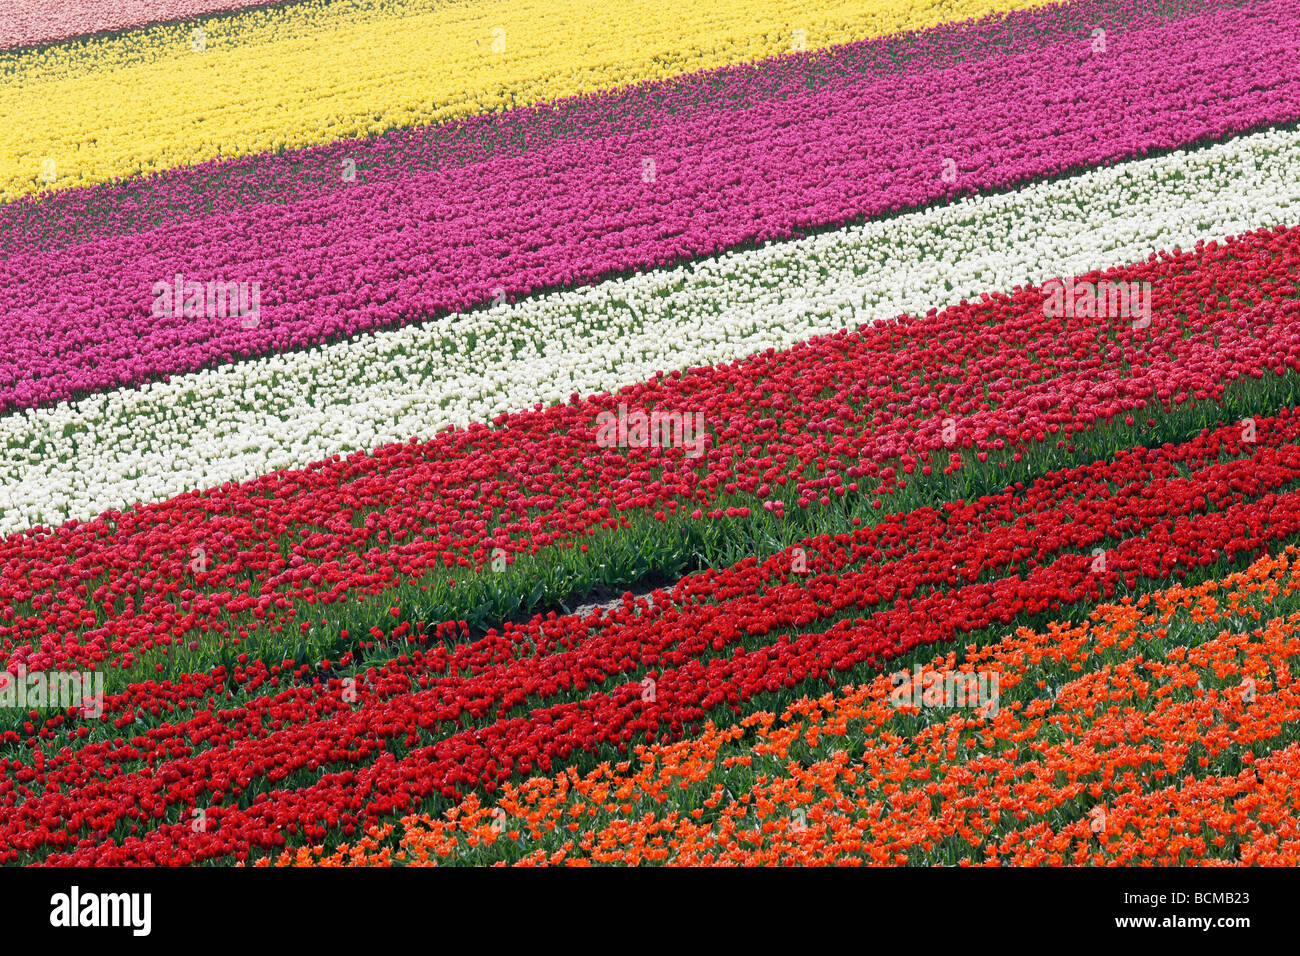 Tulip field in North Holland, Netherlands - Stock Image